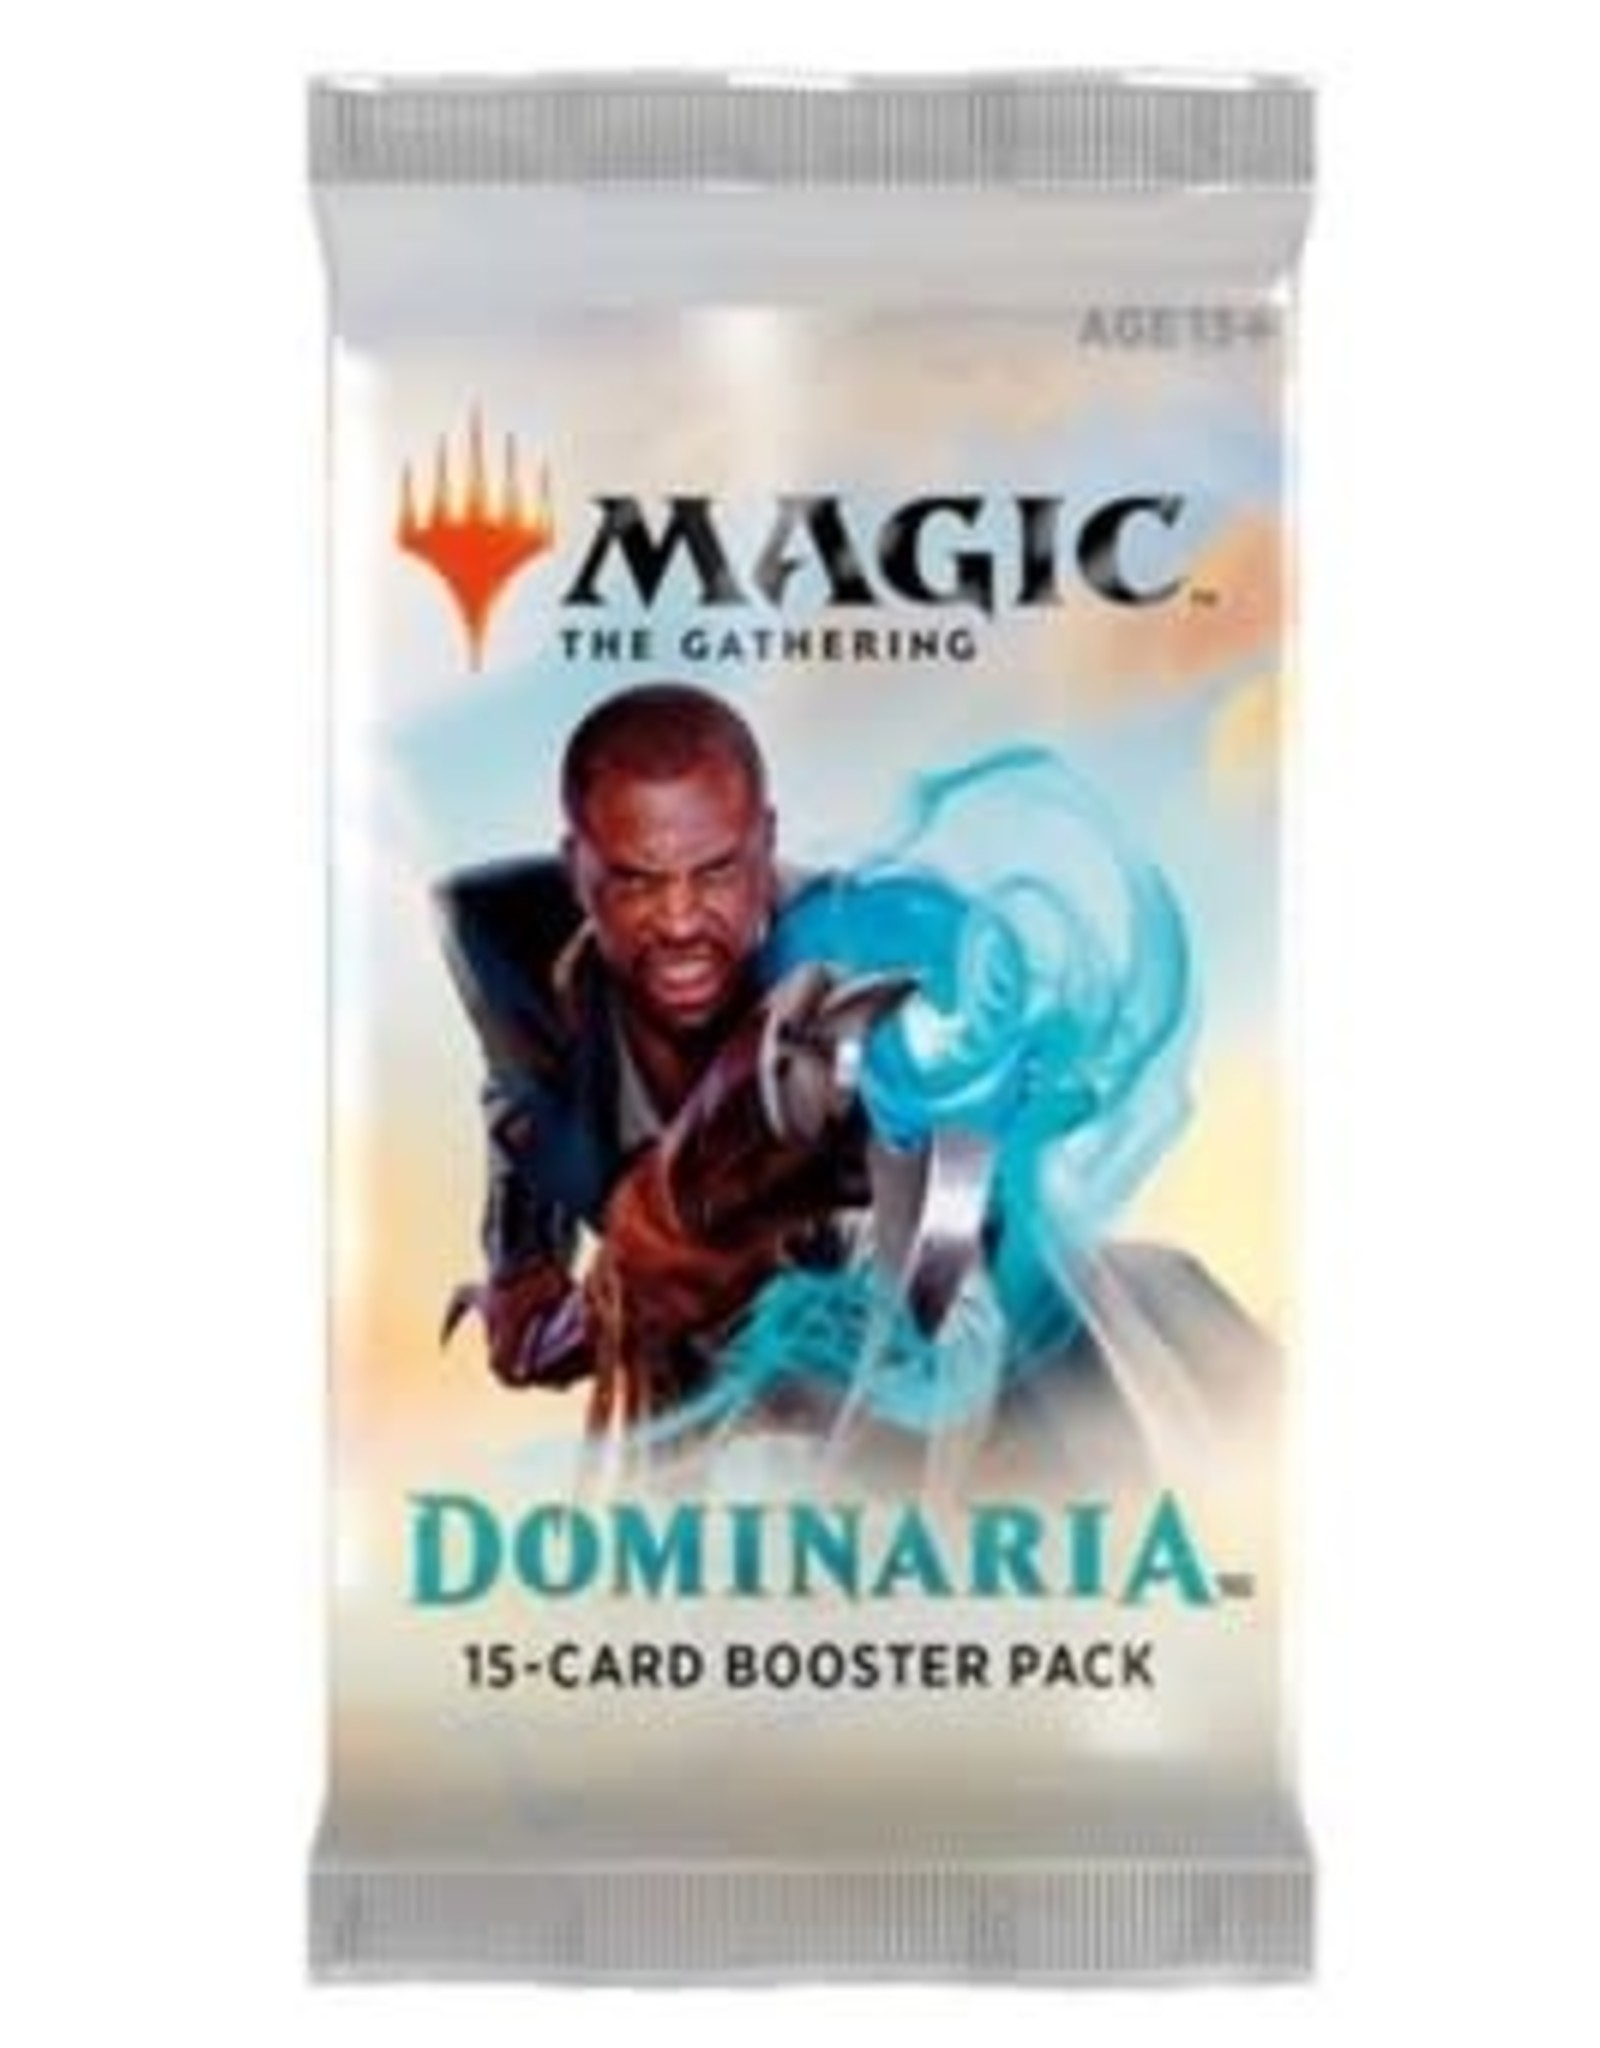 Magic: The Gathering Dominaria - Booster Pack